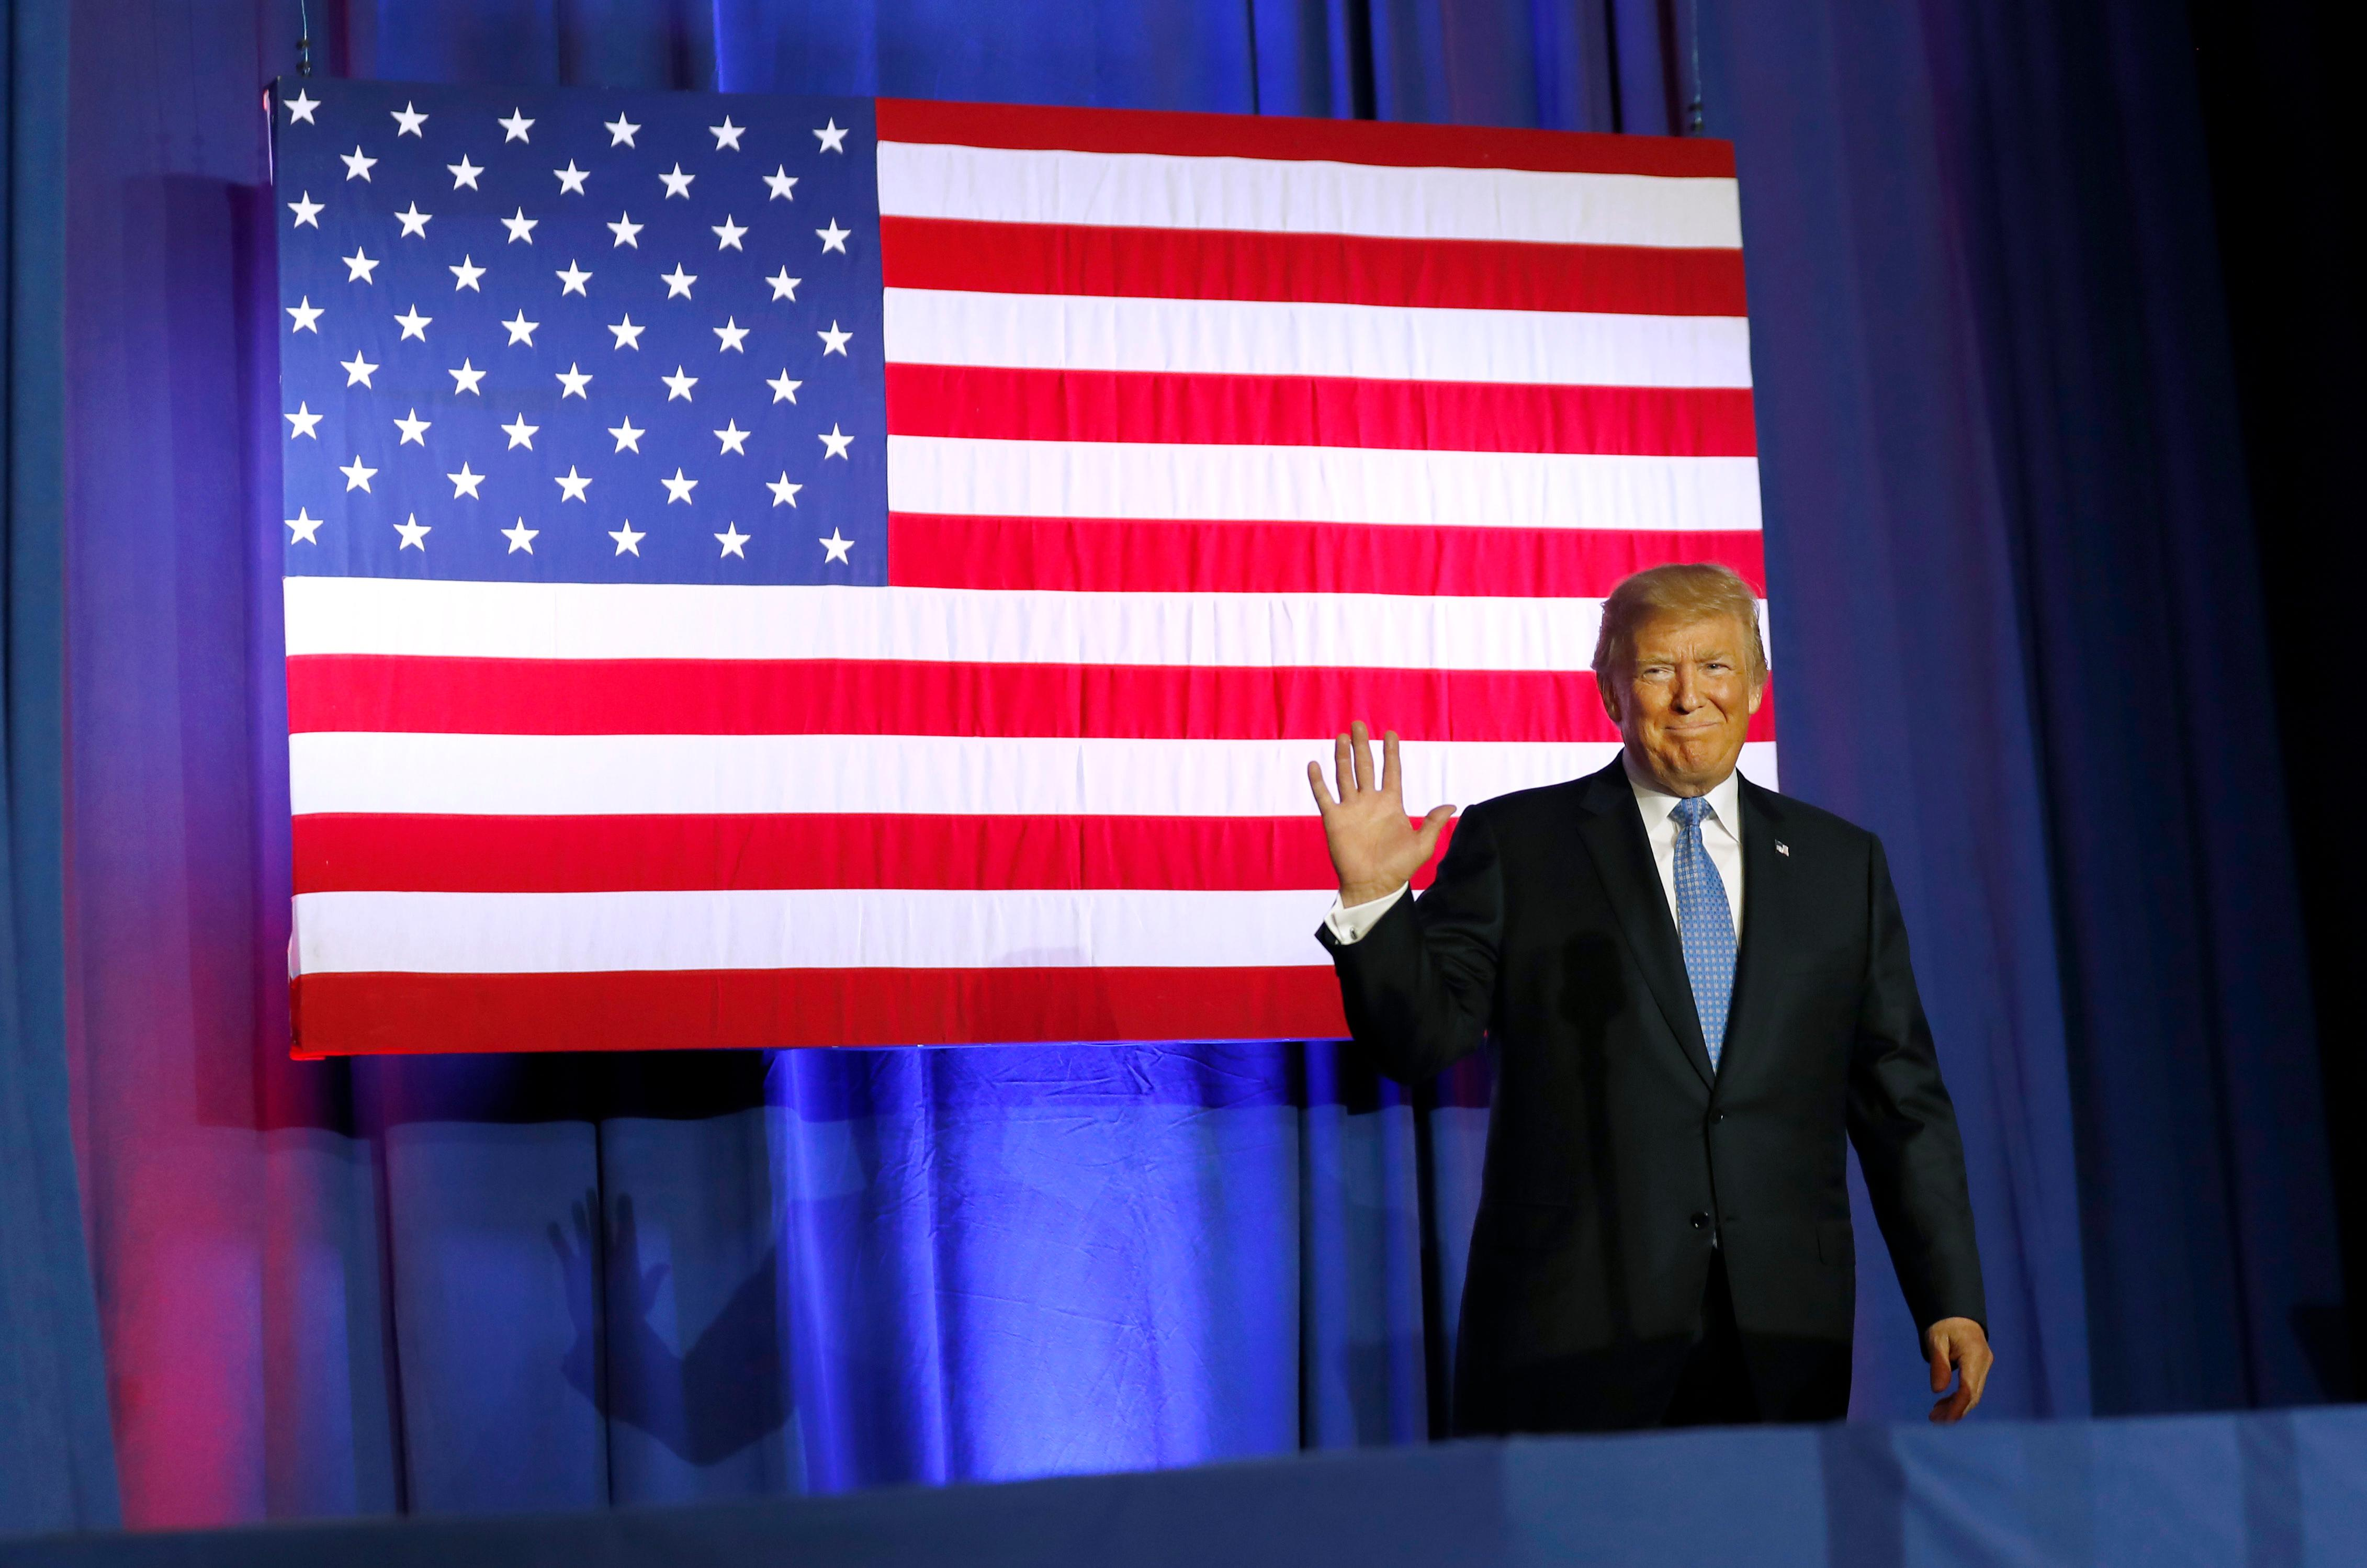 President Donald Trump arrives to speak about tax reform at the Farm Bureau Building at the Indiana State Fairgrounds, Wednesday, Sept. 27, 2017, in Indianapolis. (AP Photo/Alex Brandon)